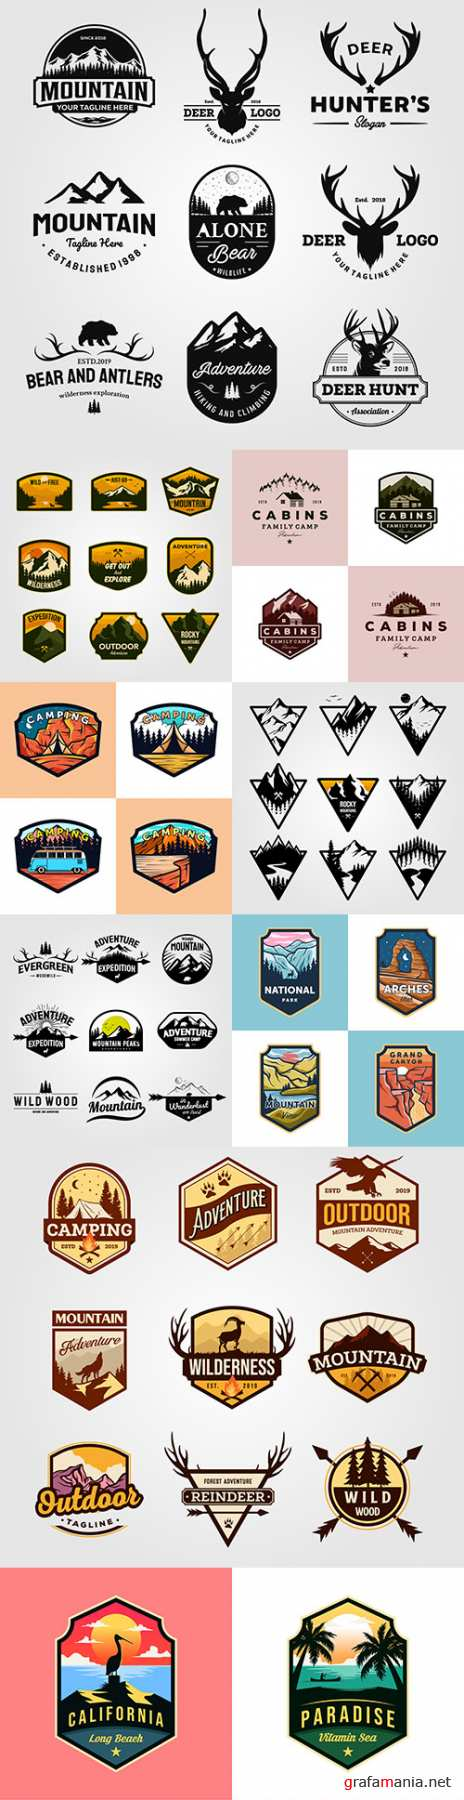 Camping and hunting emblems vintage design